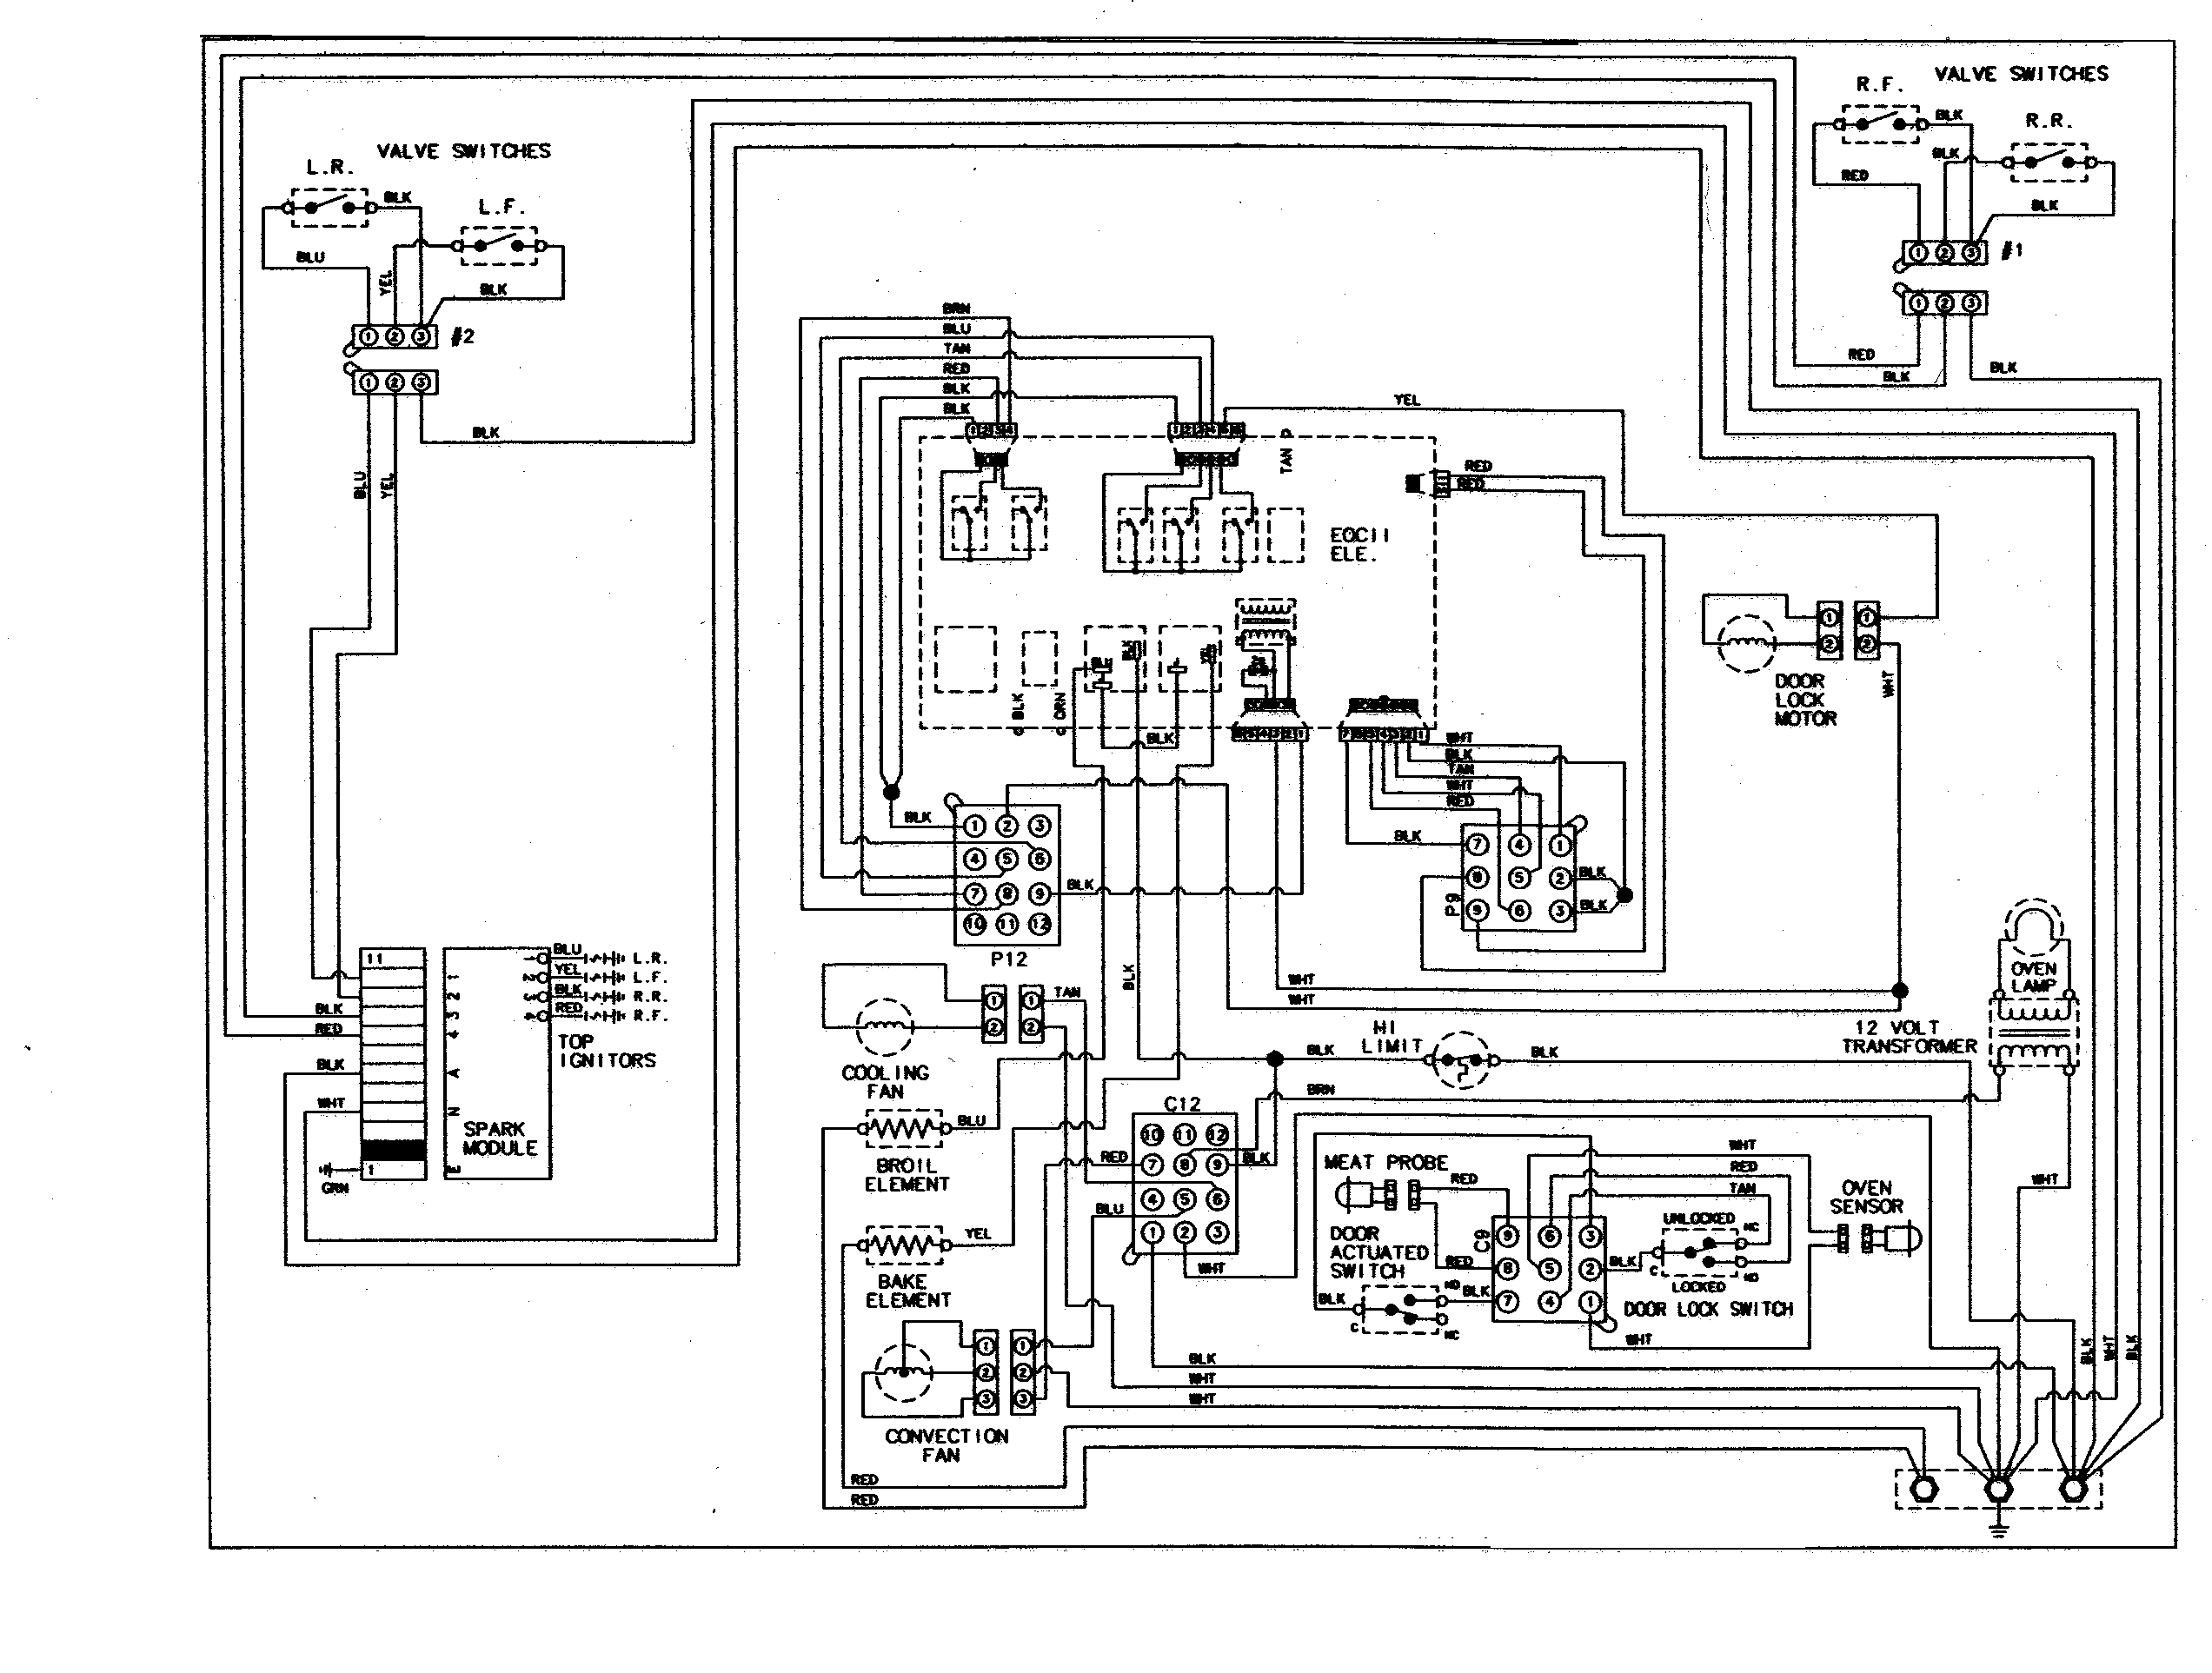 ge stove wiring diagram ge image wiring diagram ge oven wiring diagram online ge wiring diagrams on ge stove wiring diagram